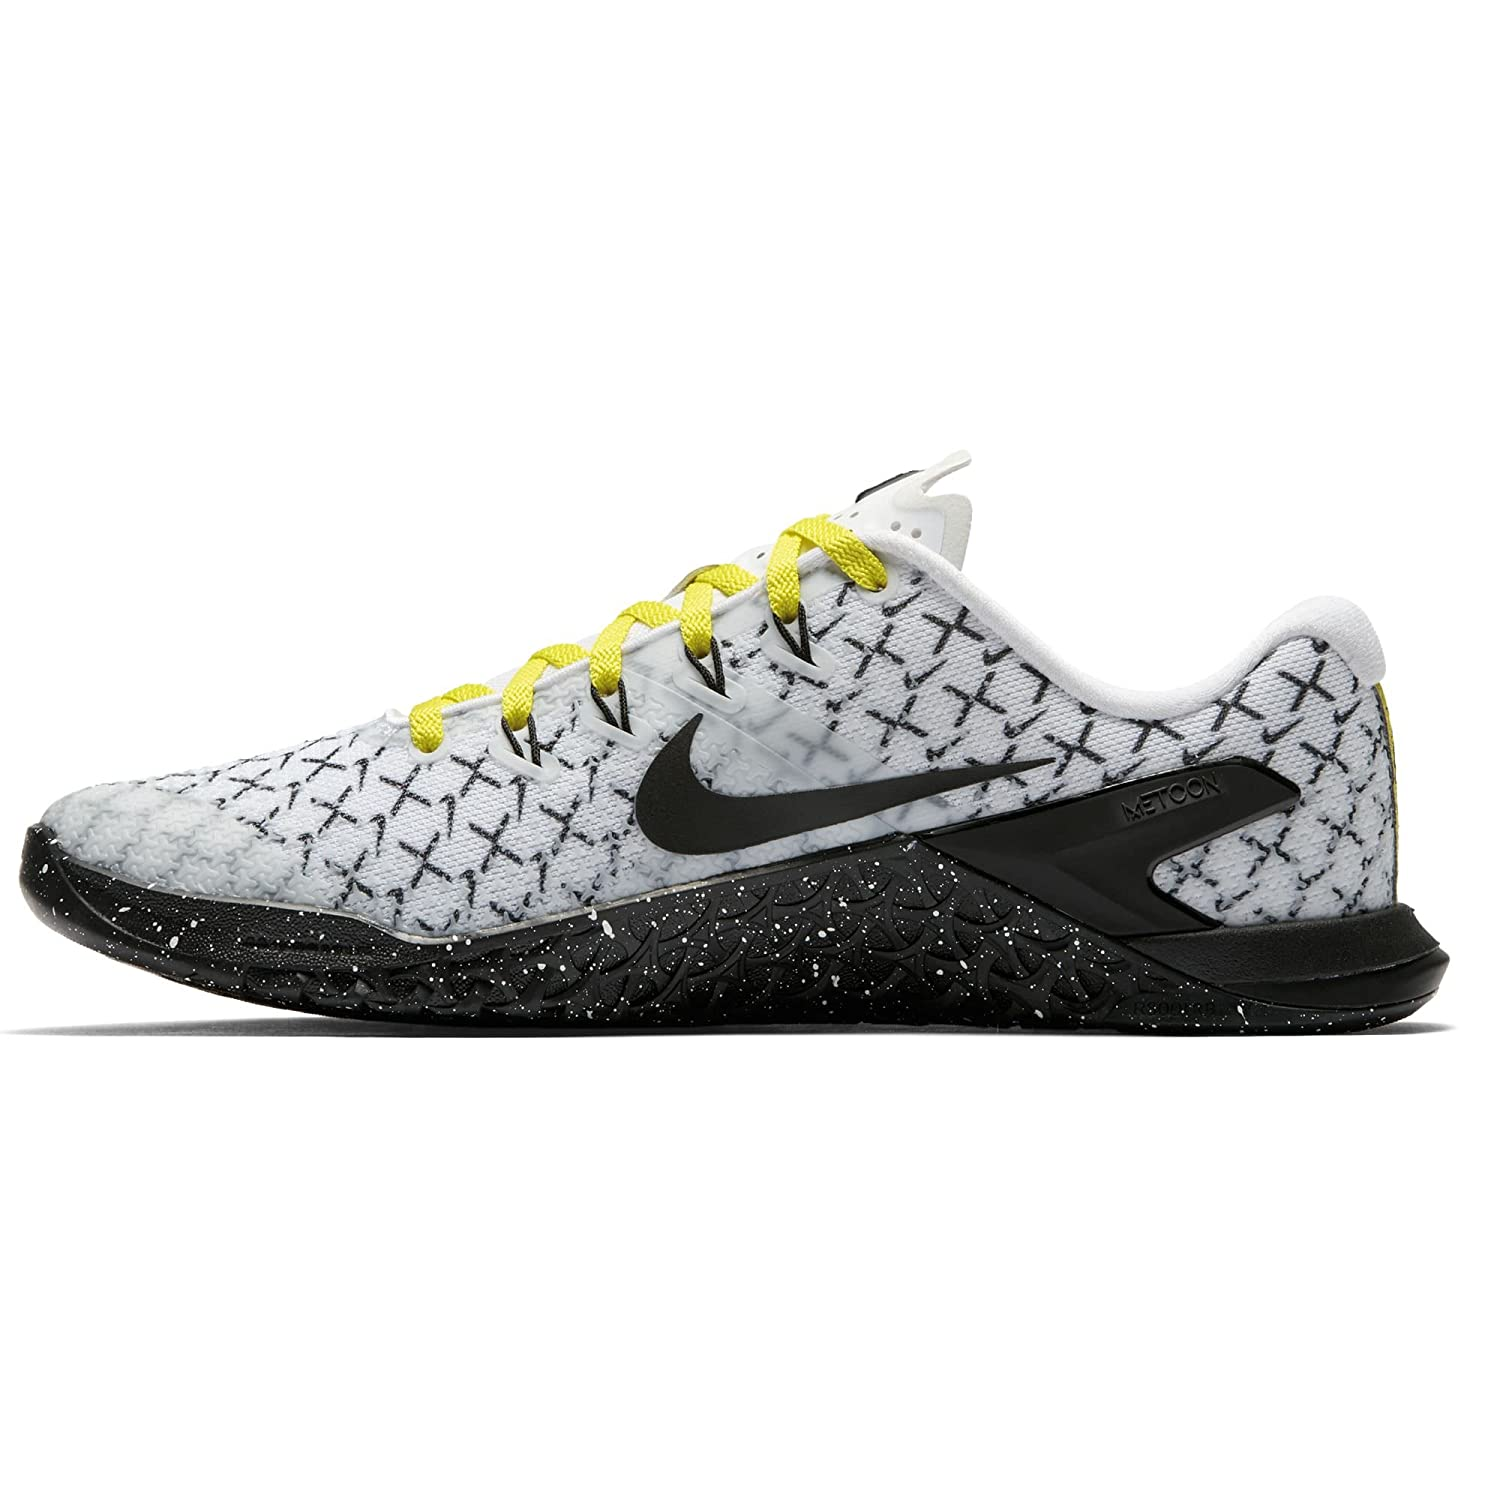 NIKE Women Metcon 4 Training Shoe Grey B0789SNQMW 8.5 M US|White/Black/Yellow